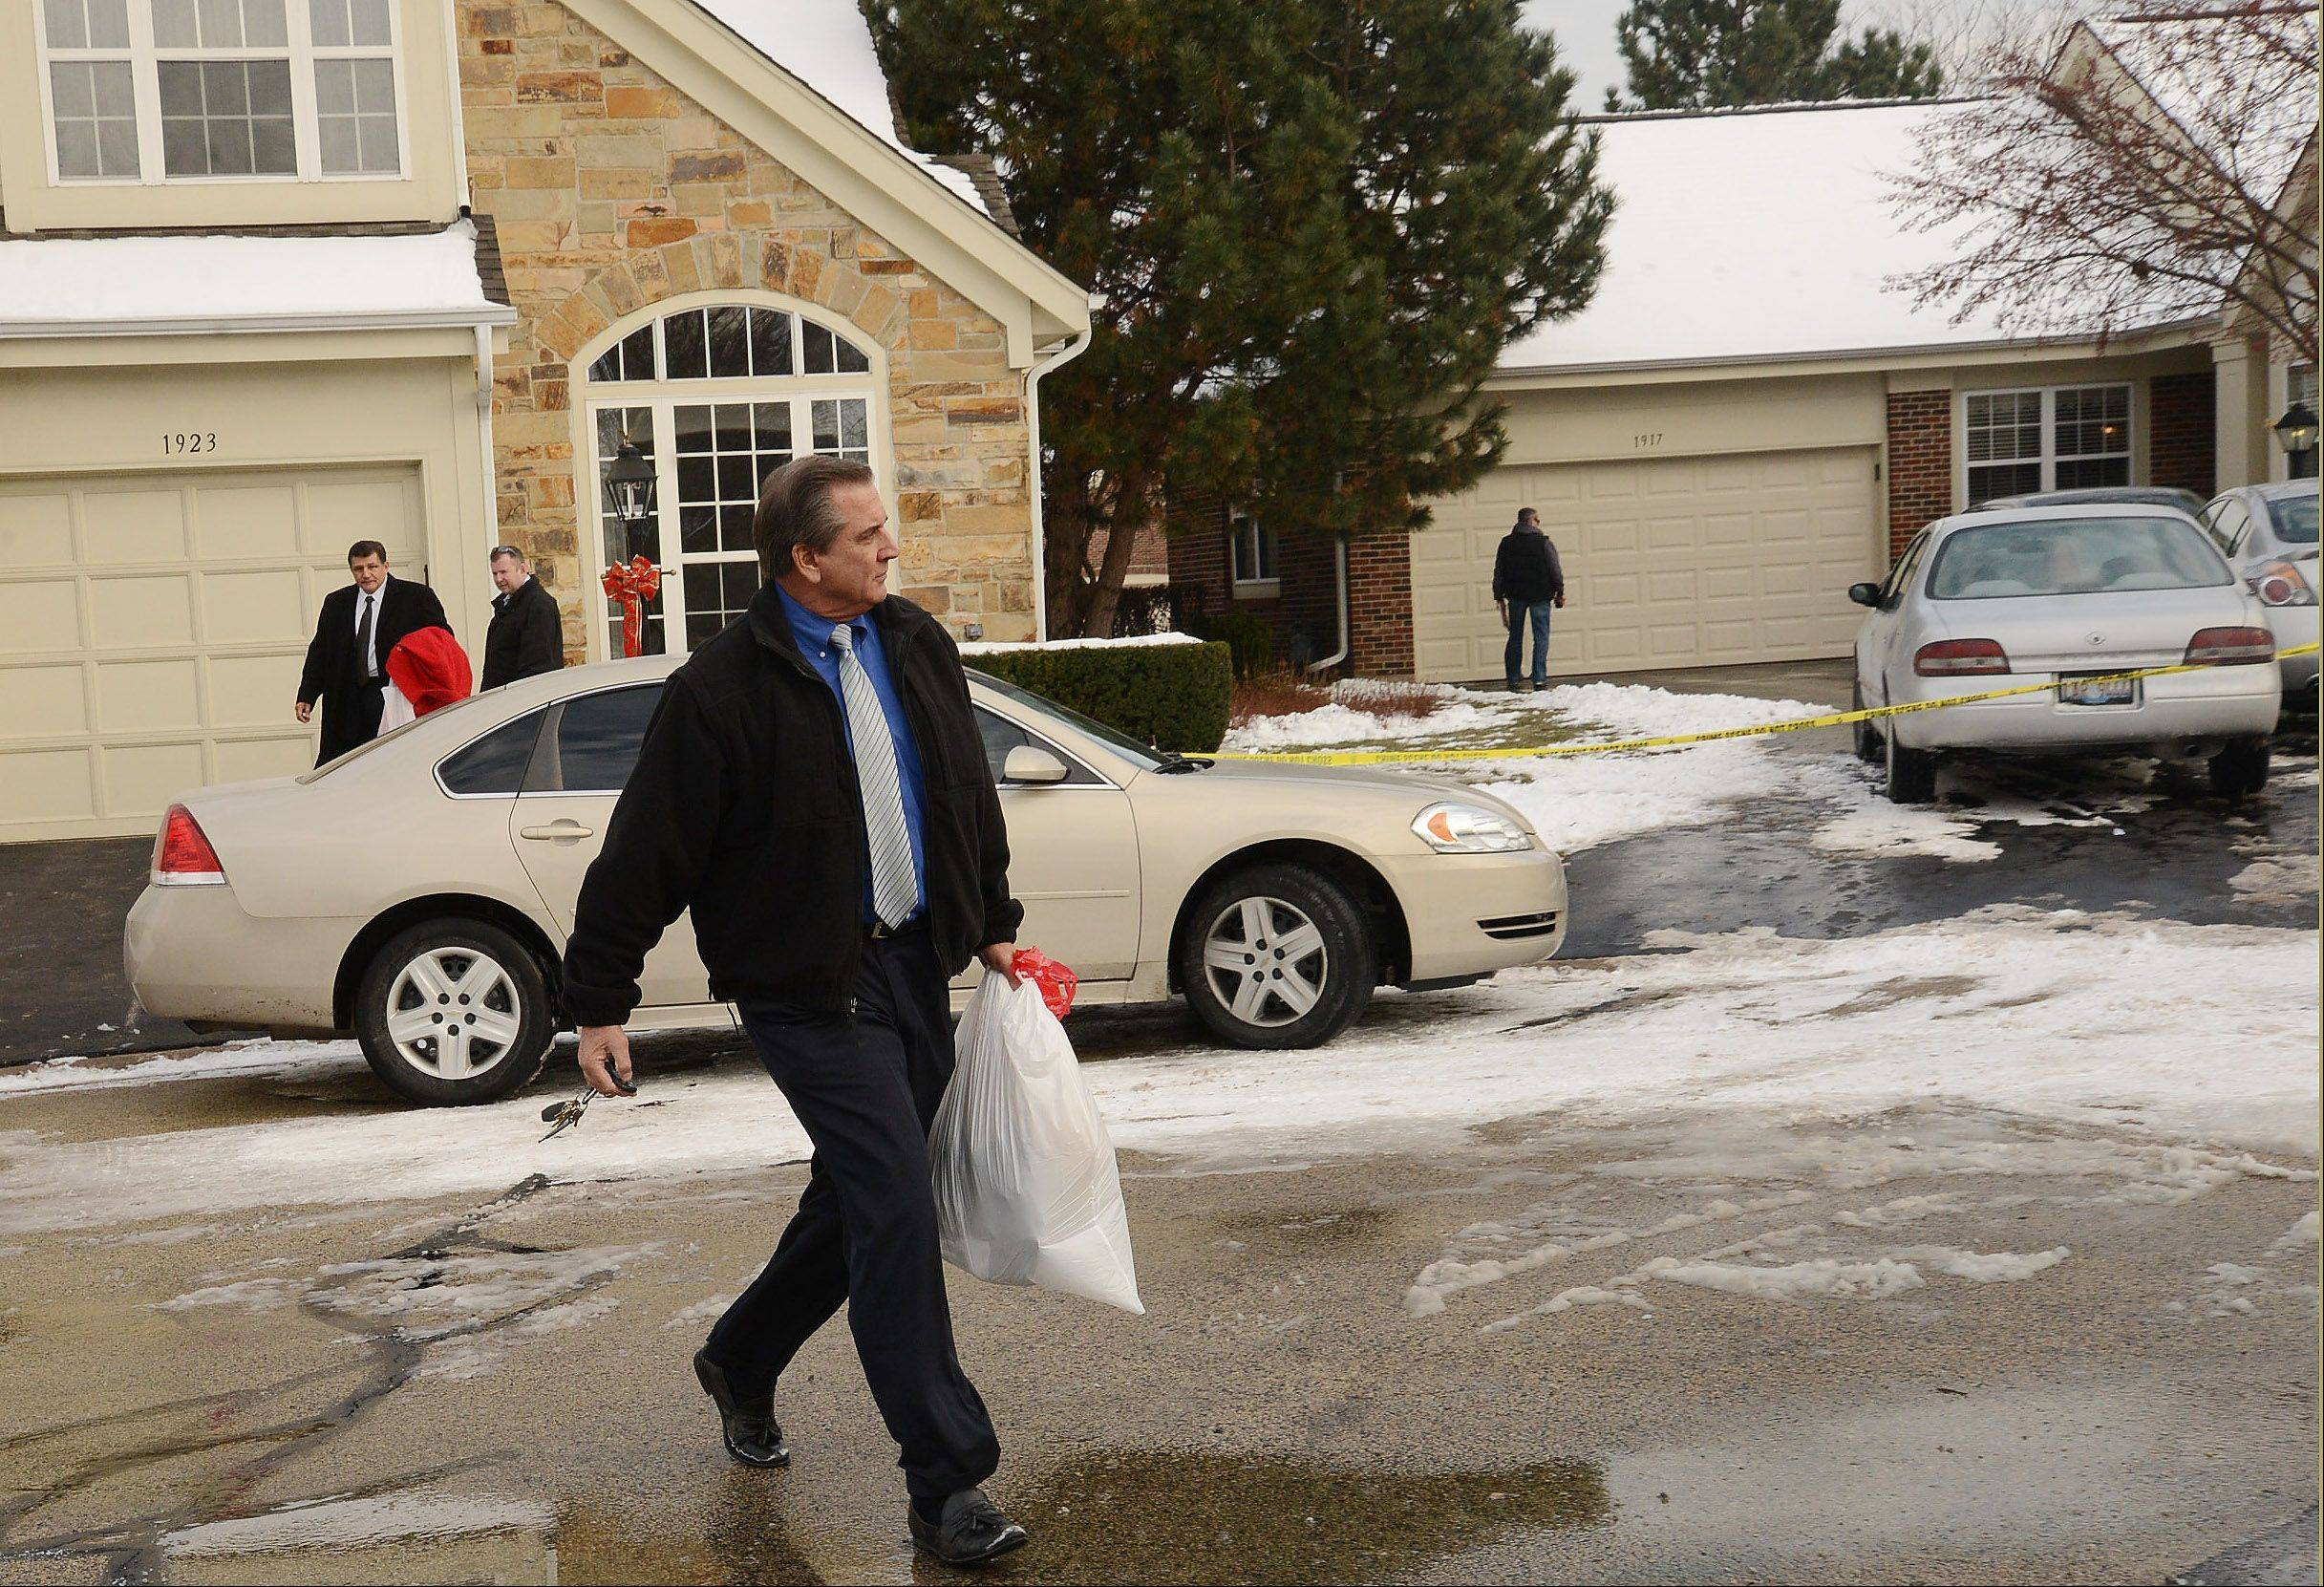 An investigator carries a bag taken Friday from the home on the 1900 block of Windham Court, right, as police continue to investigate the Thursday night shooting scene in Arlington Heights.